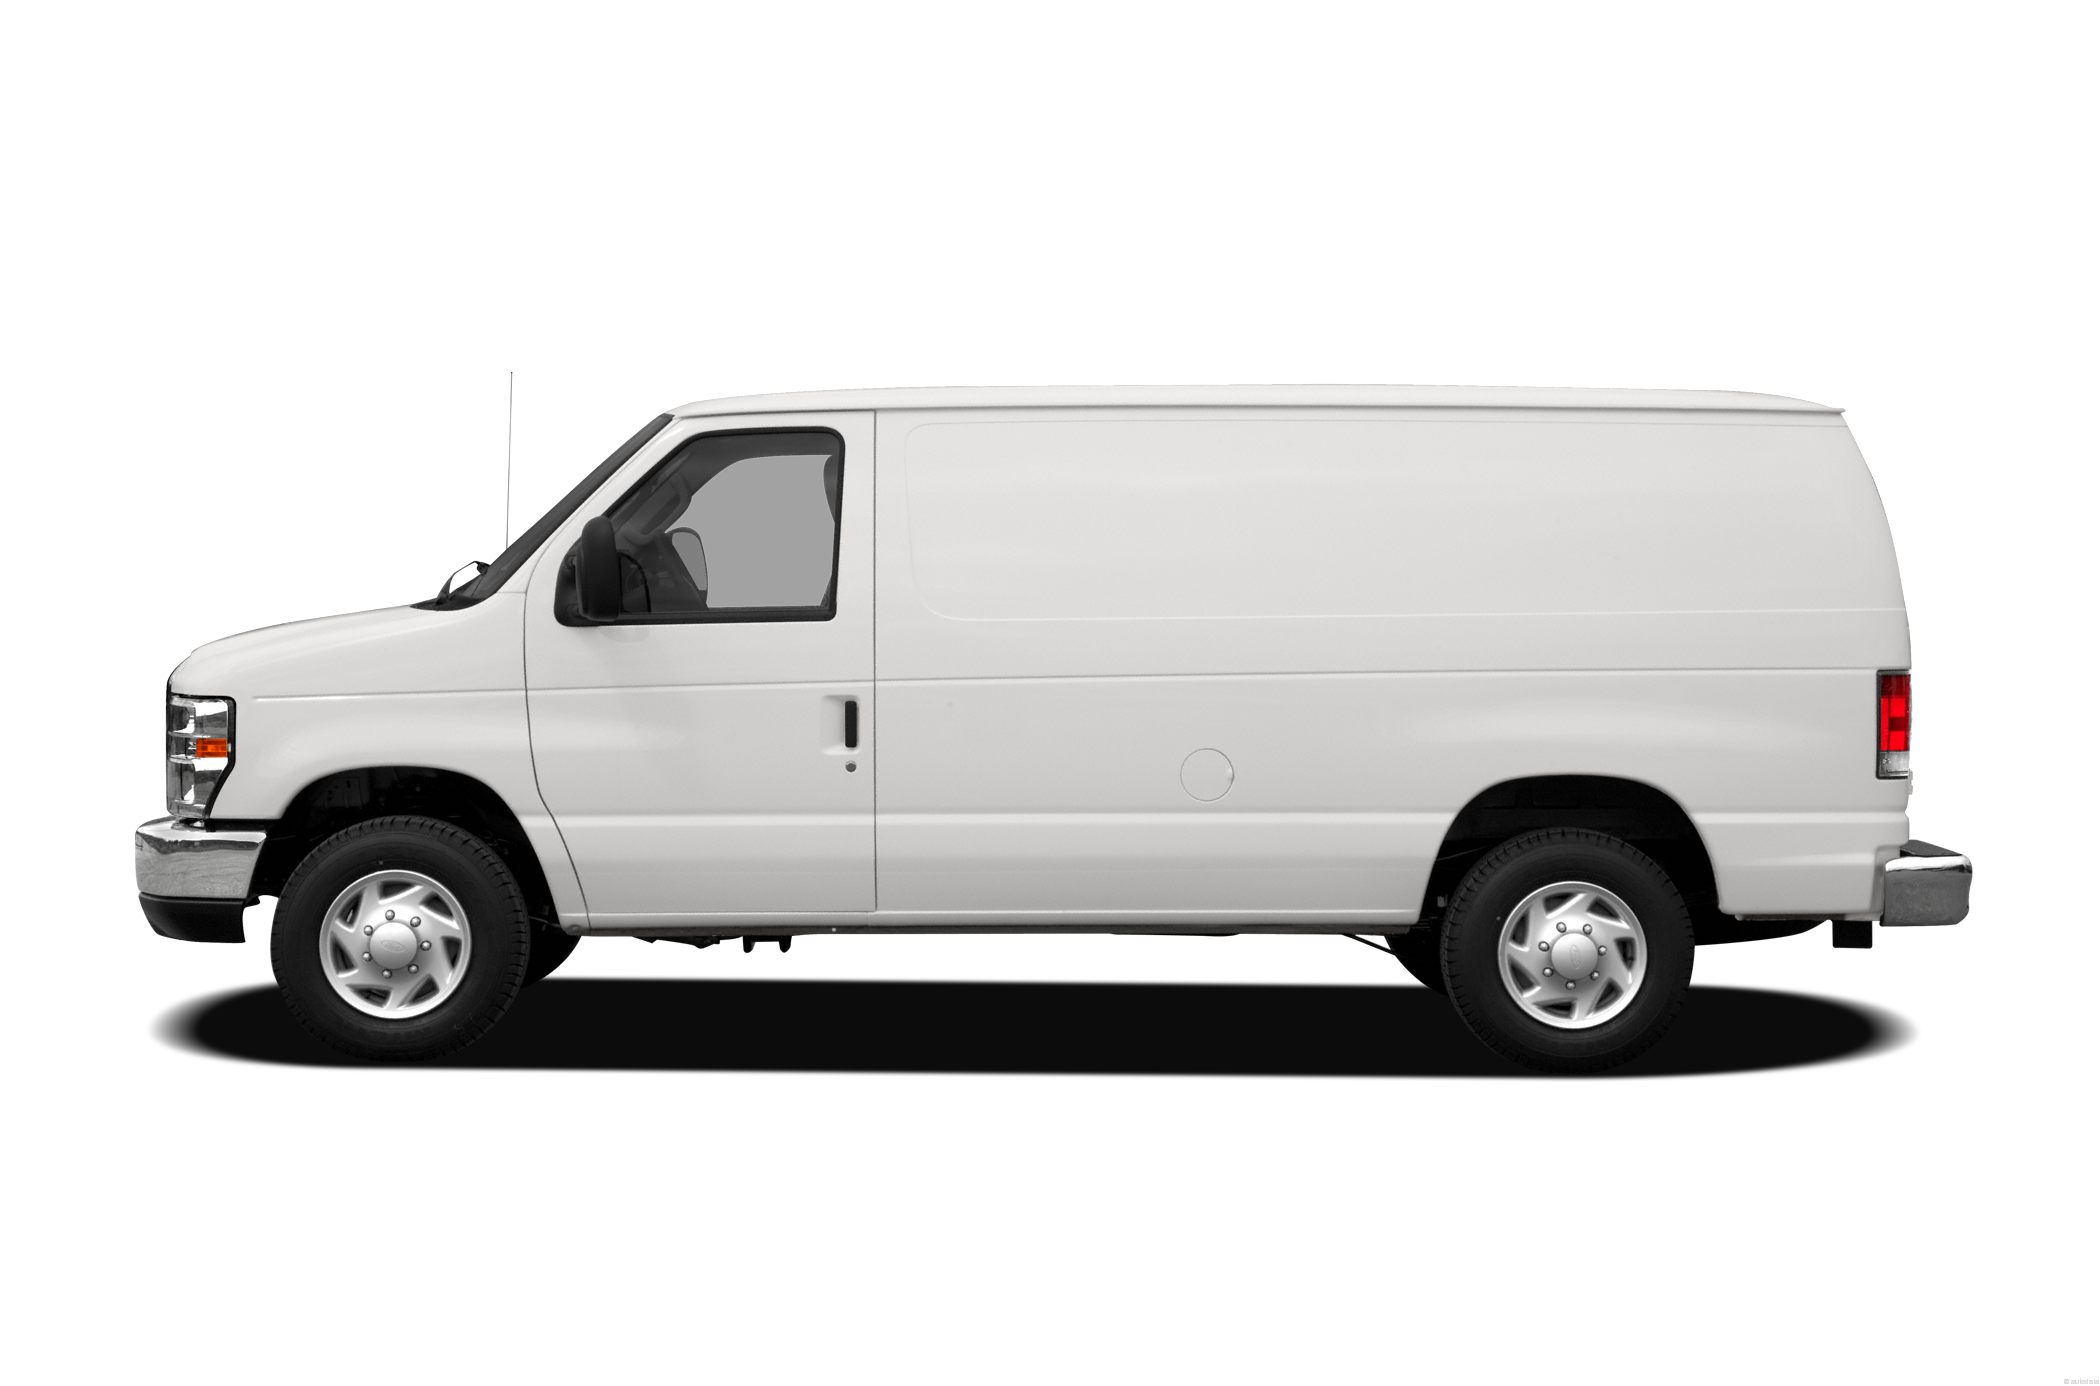 Ford E-Series Van #18